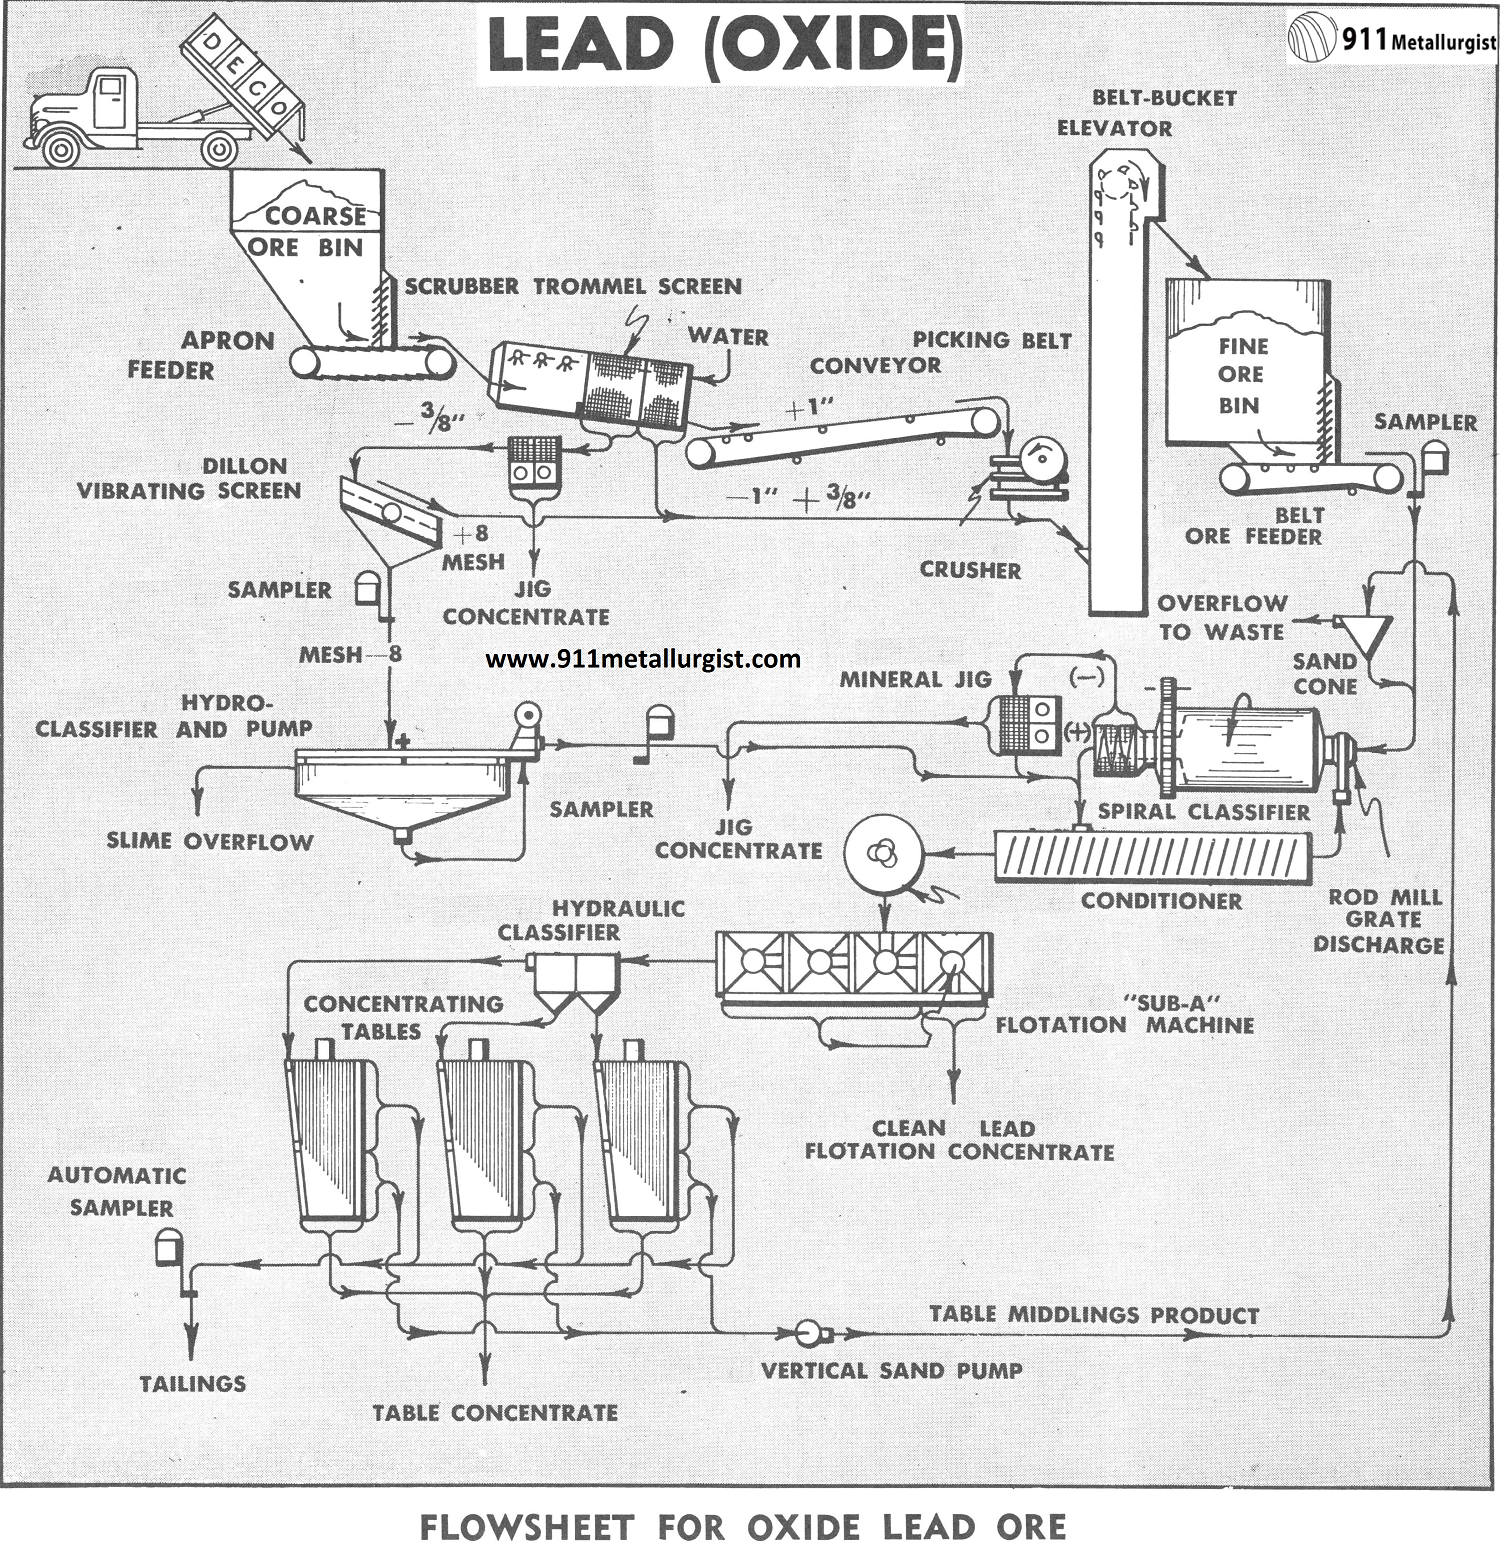 Flowsheet for Oxide Lead Ore